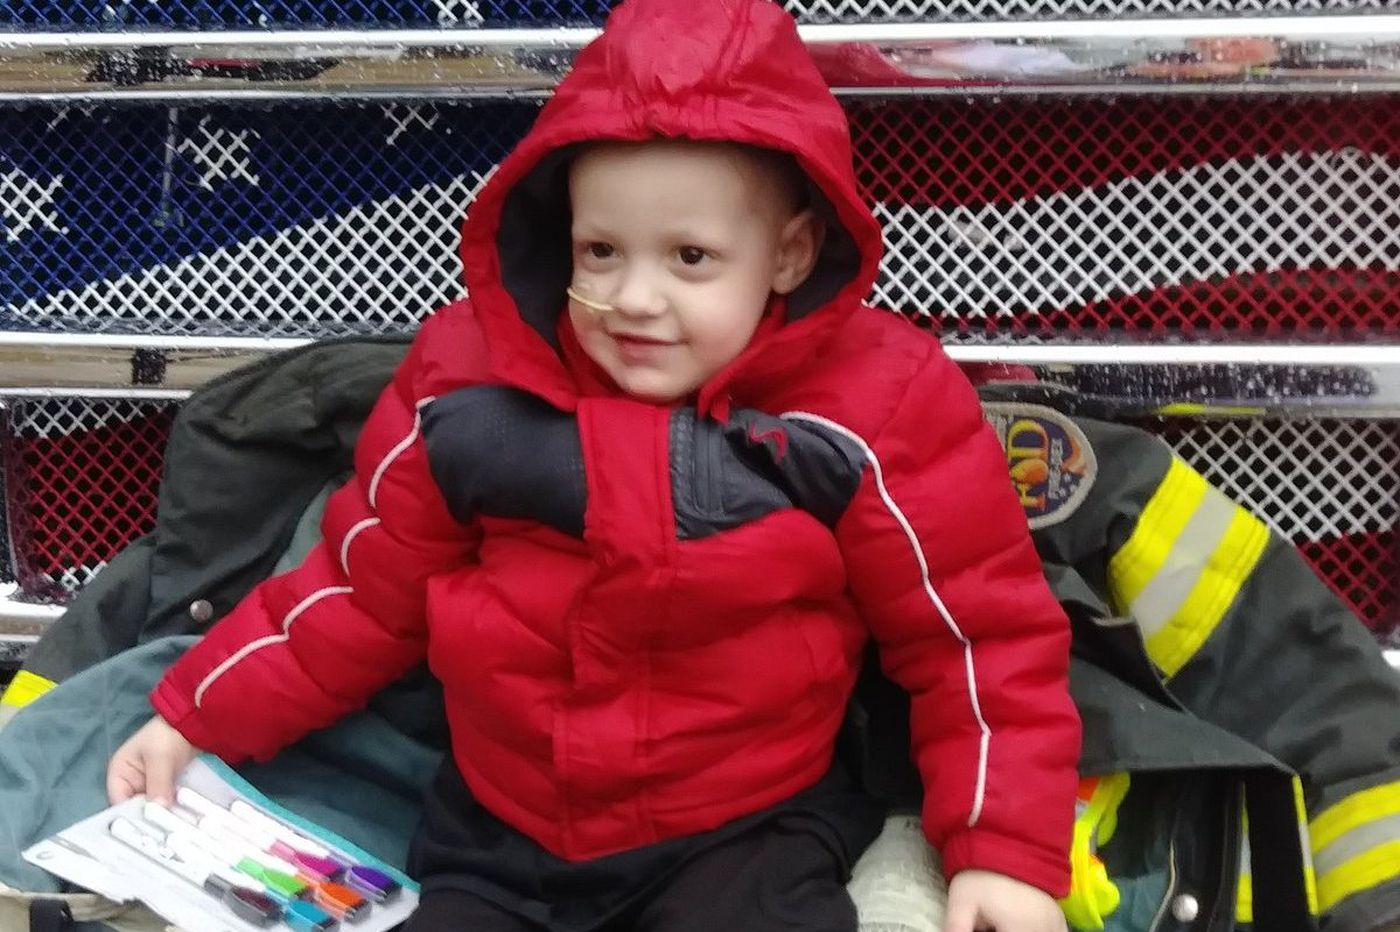 Benjamin Graham, 3-year-old cancer patient made honorary police officer, dies